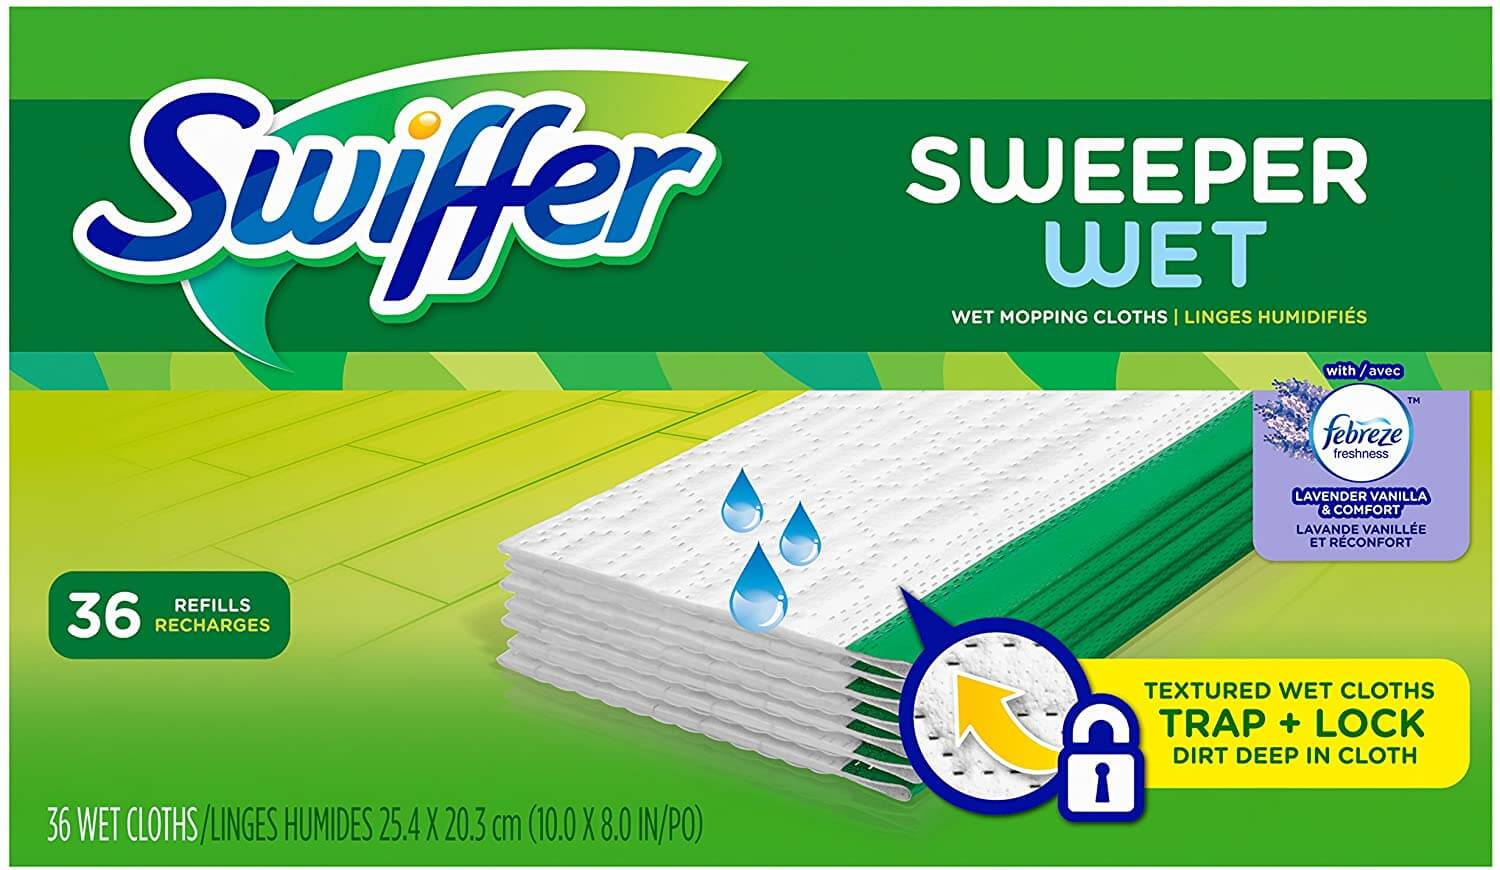 Swiffer-Sweeper-Wet-Mopping-Cloth-Multi-Surface-Refills